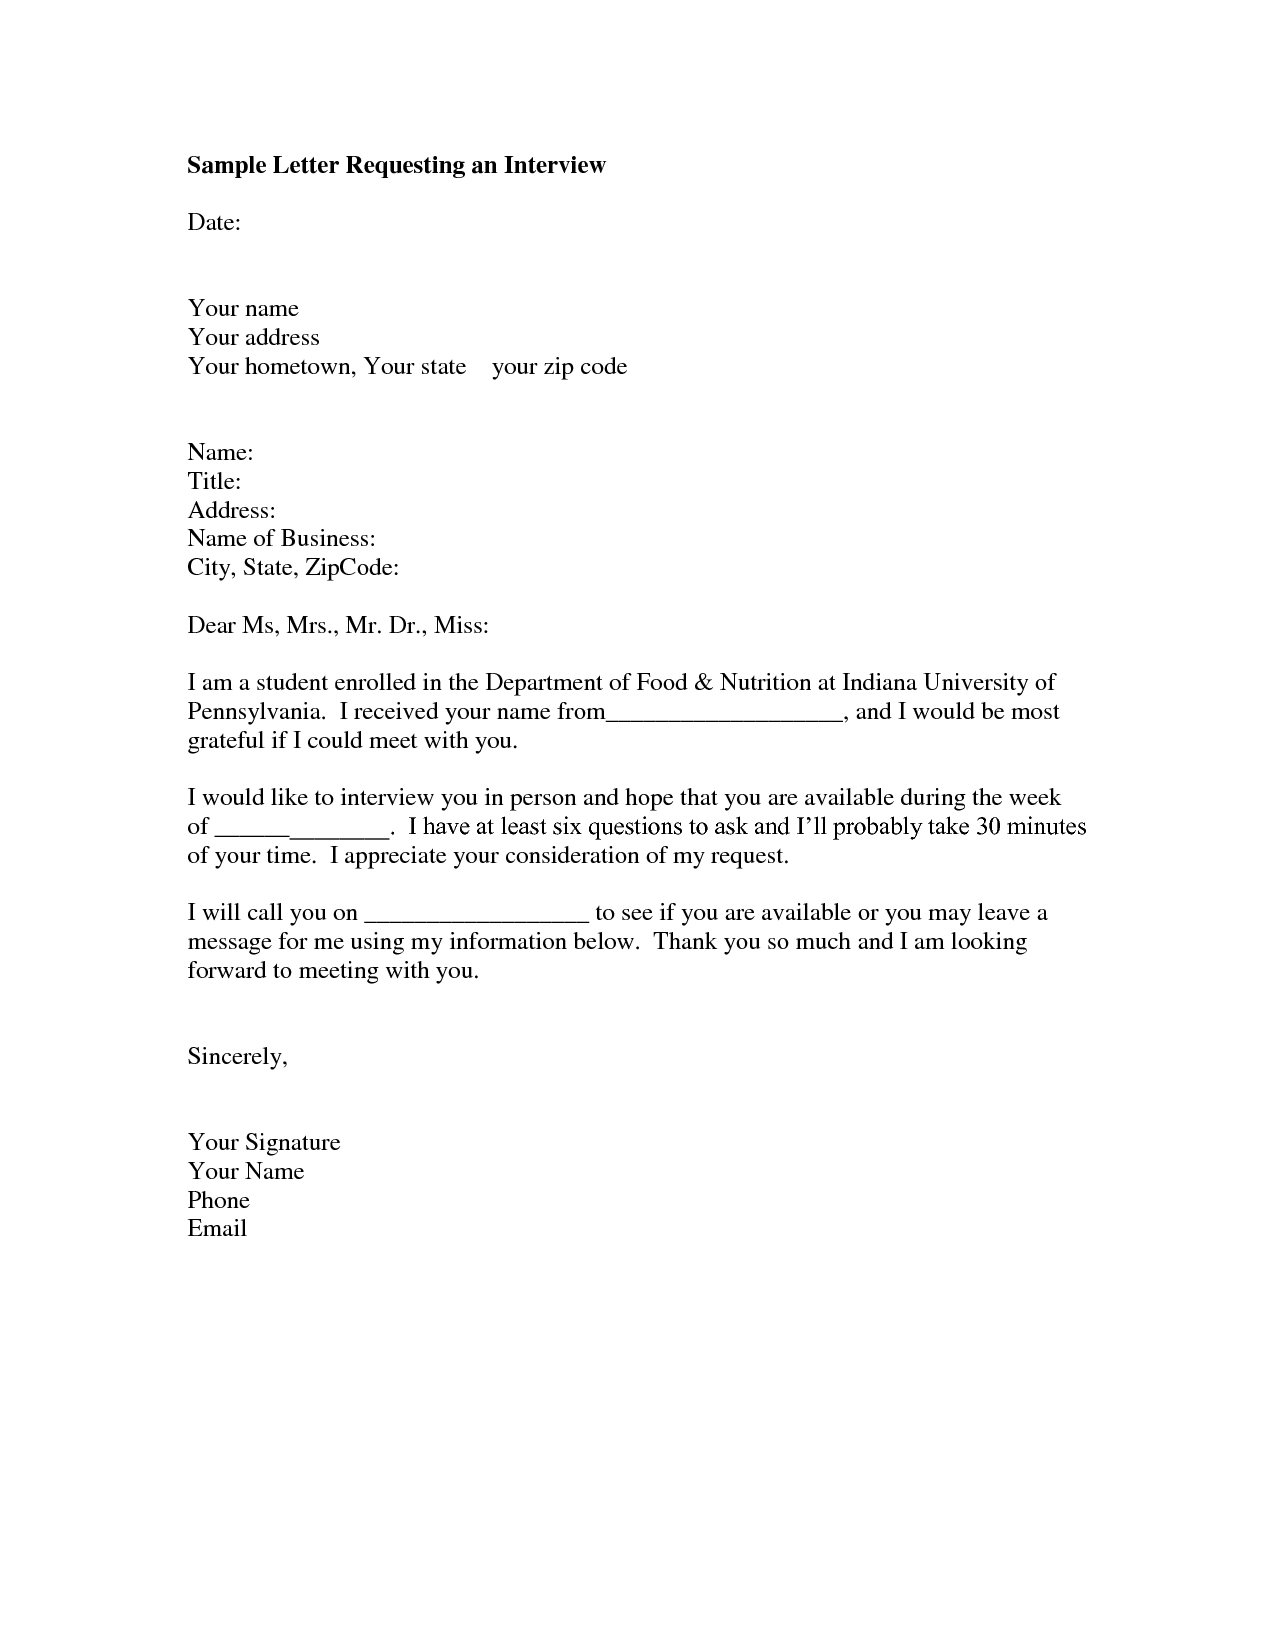 Interview request letter sample format of a letter you can use to interview request letter sample format of a letter you can use to request an interview with a prospecitive employer thecheapjerseys Choice Image